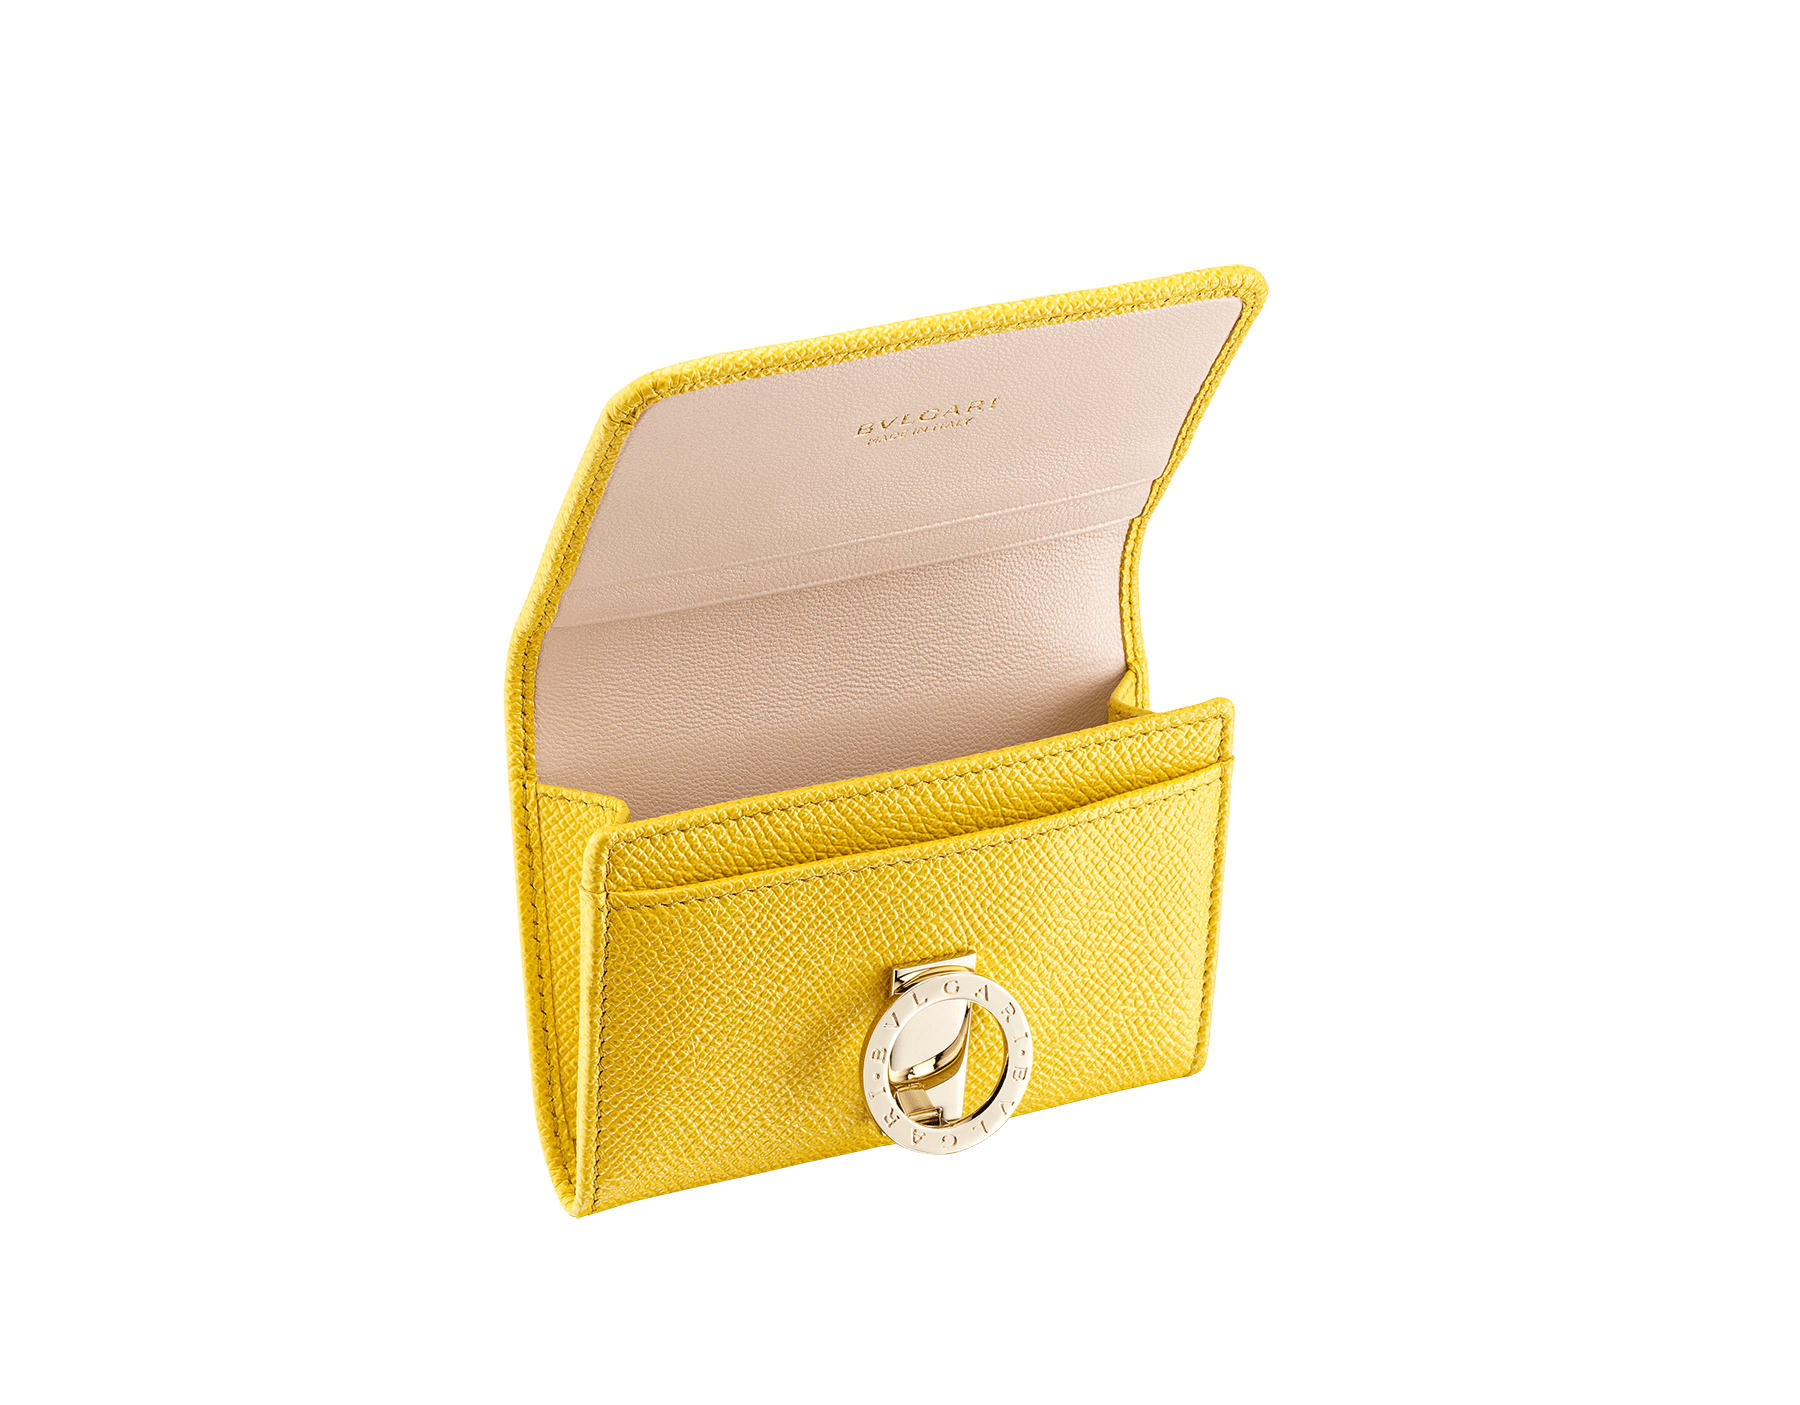 """BVLGARI BVLGARI"" business card holder in mint bright grain calf leather and taffy quartz nappa leather. Iconic logo clip closure in light gold plated brass. 579-BC-HOLDER-BGCLc image 2"